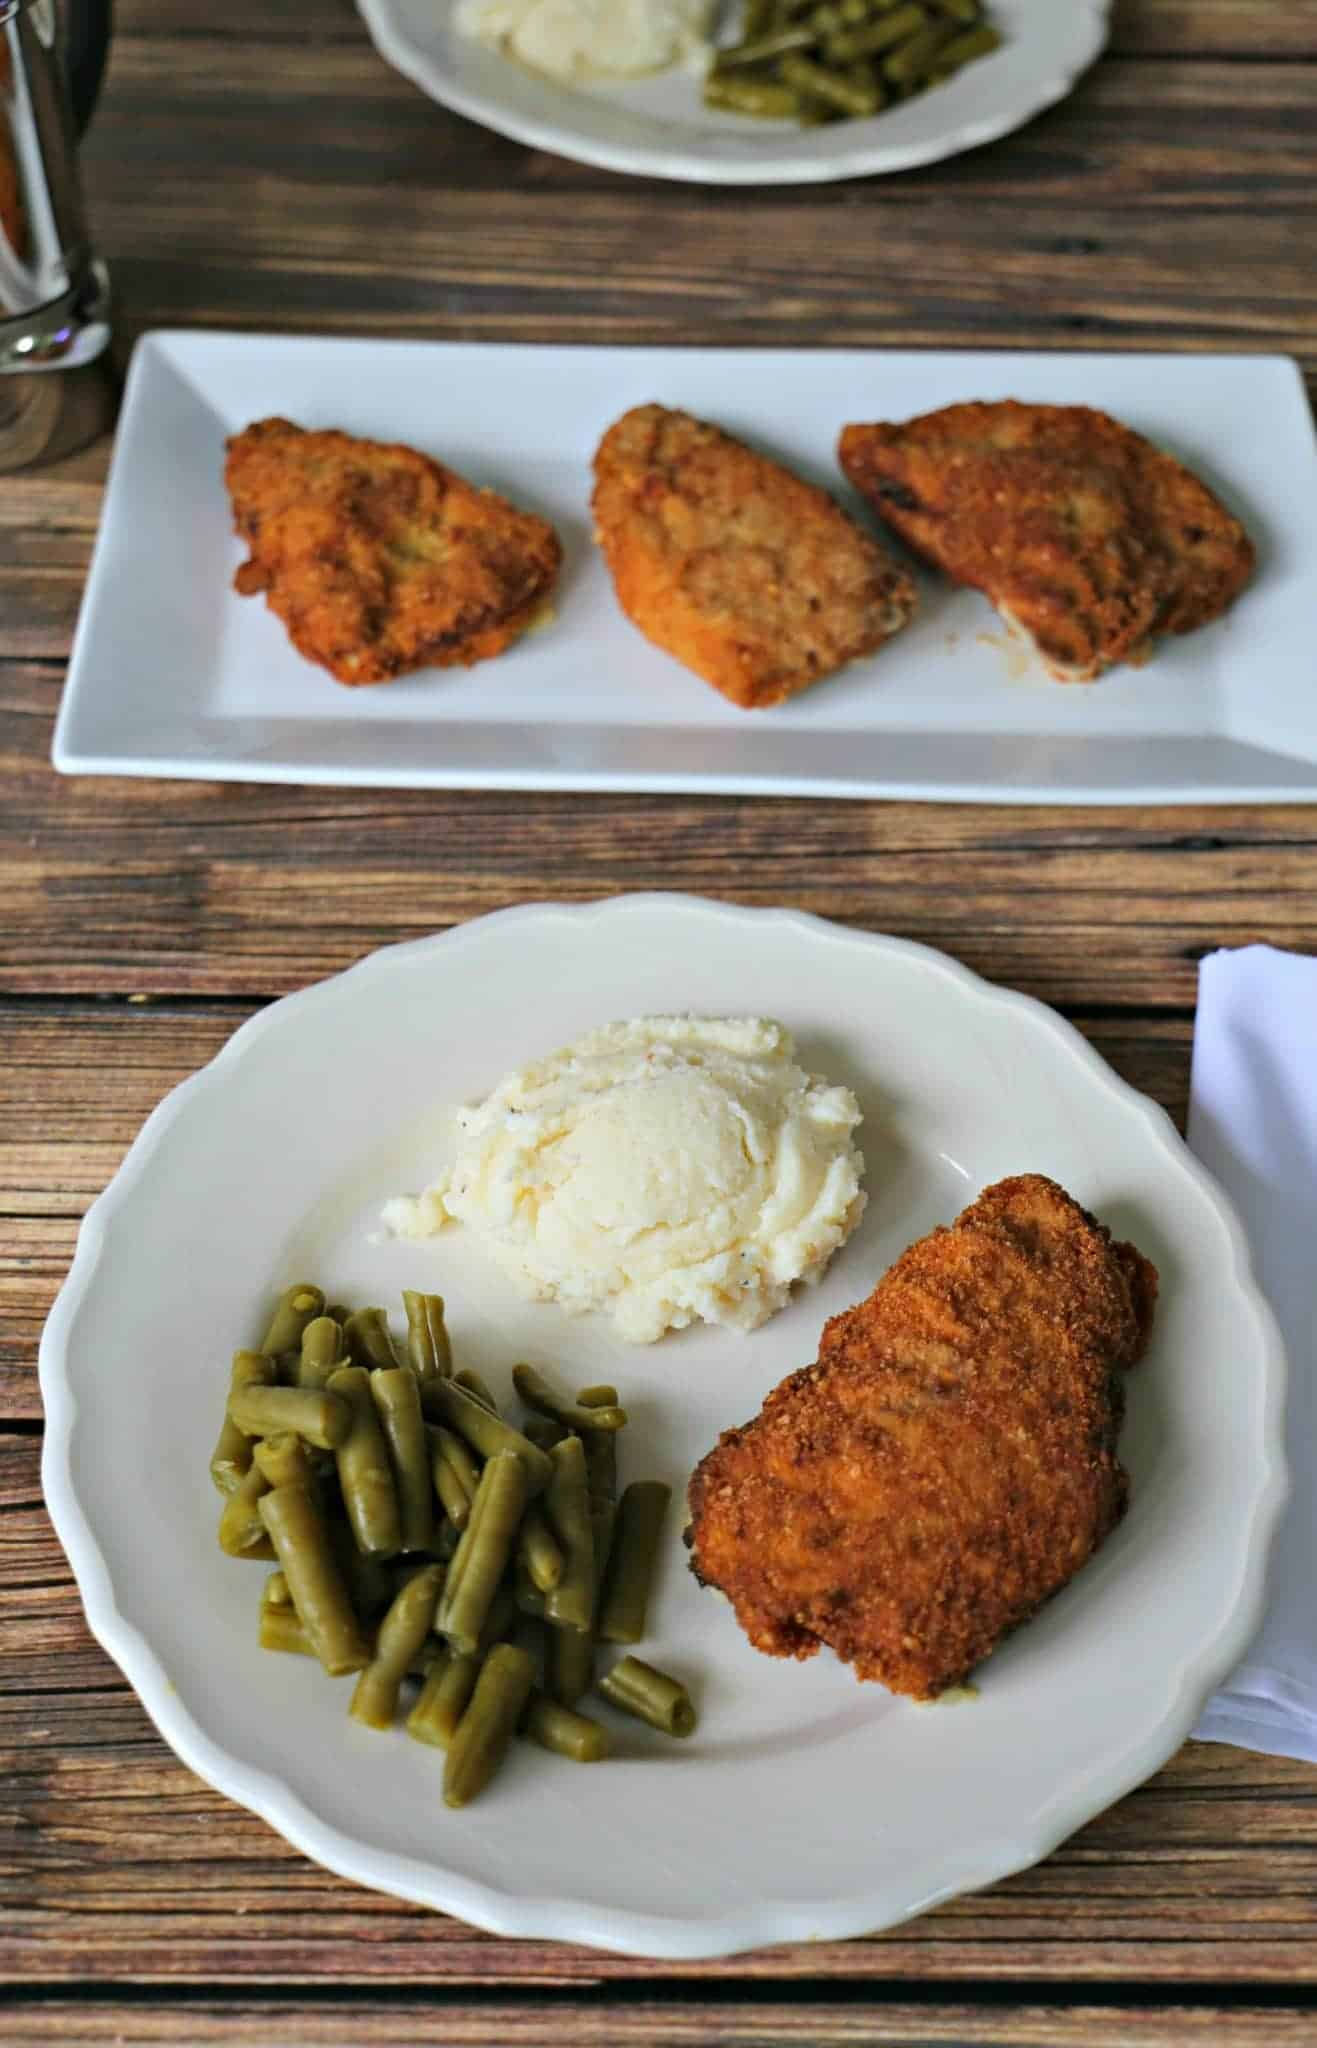 Pork Cordon Bleu on a plate with mashed potatoes and green beans